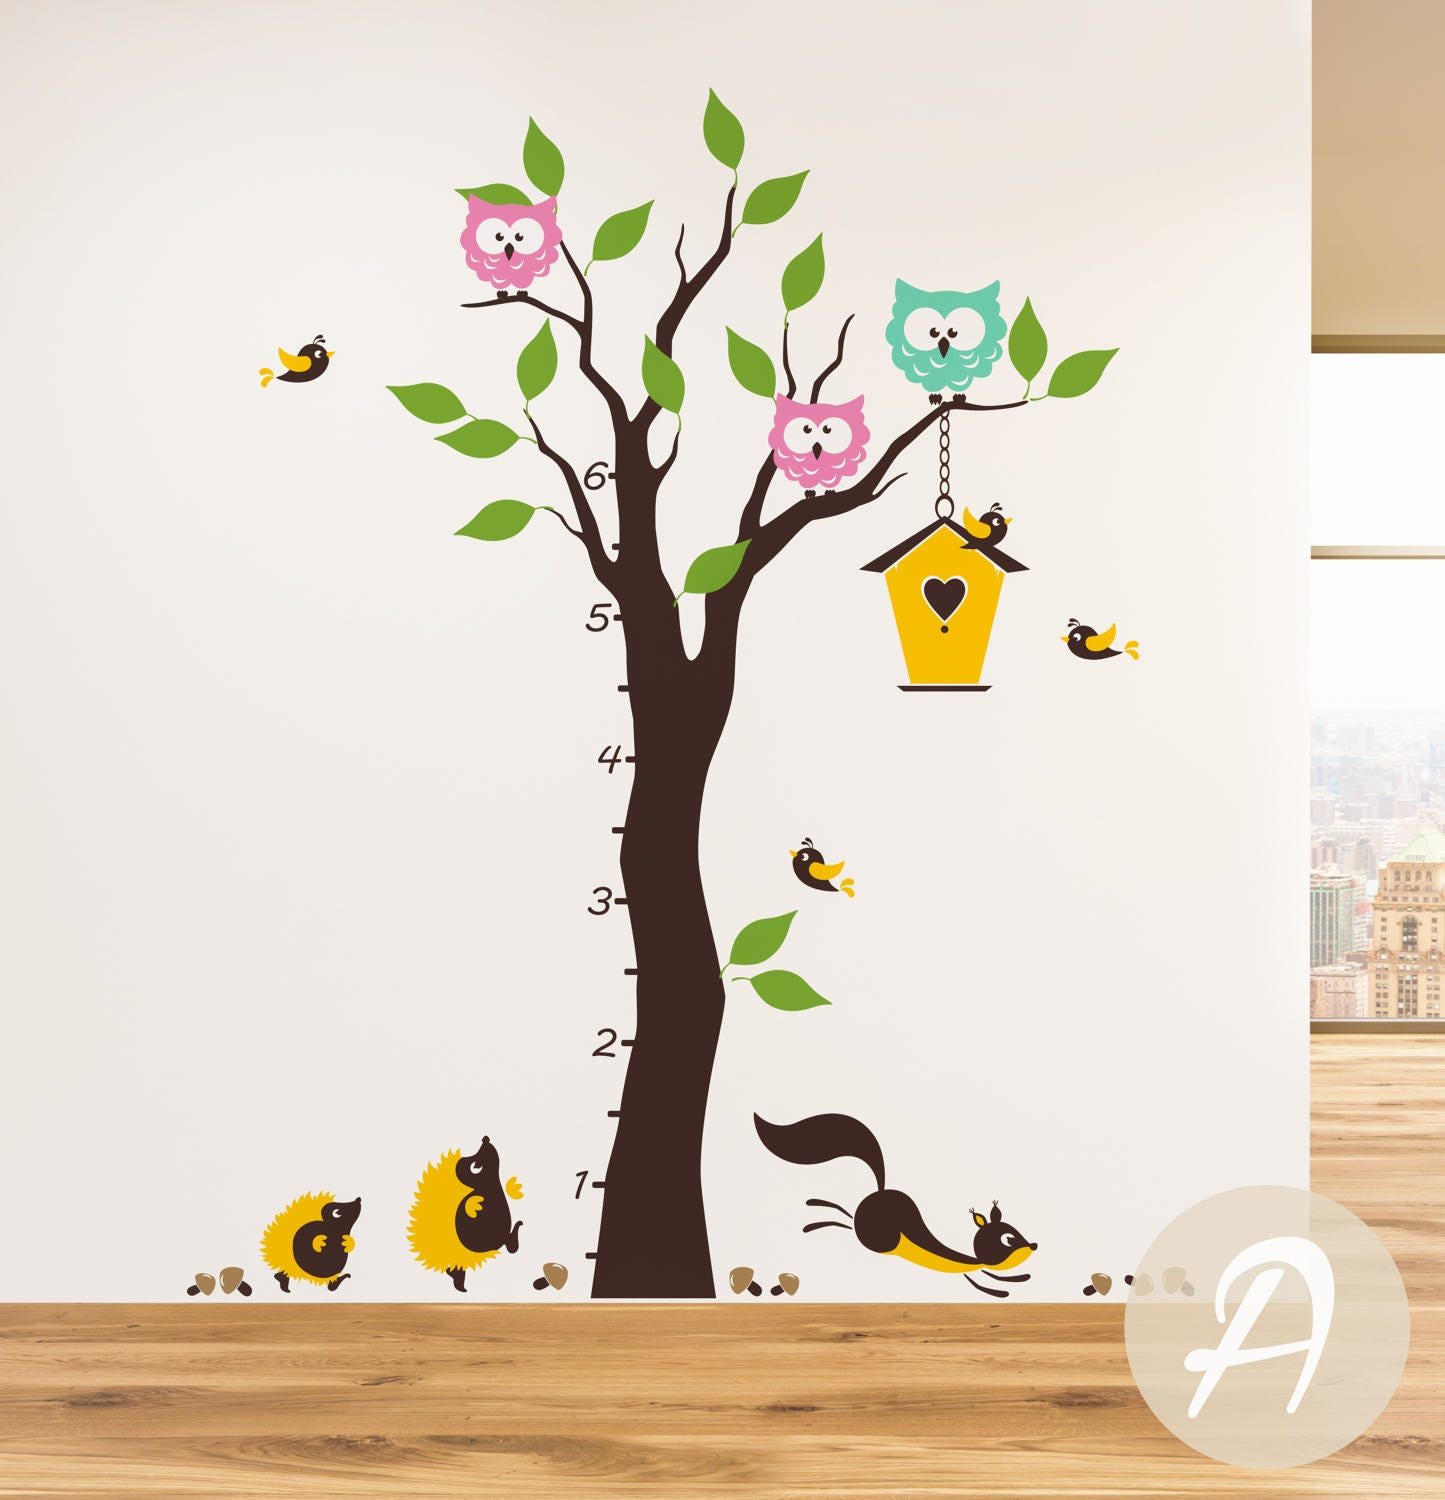 Growth chart colorful tree wall decal wall decal with zoom geenschuldenfo Image collections